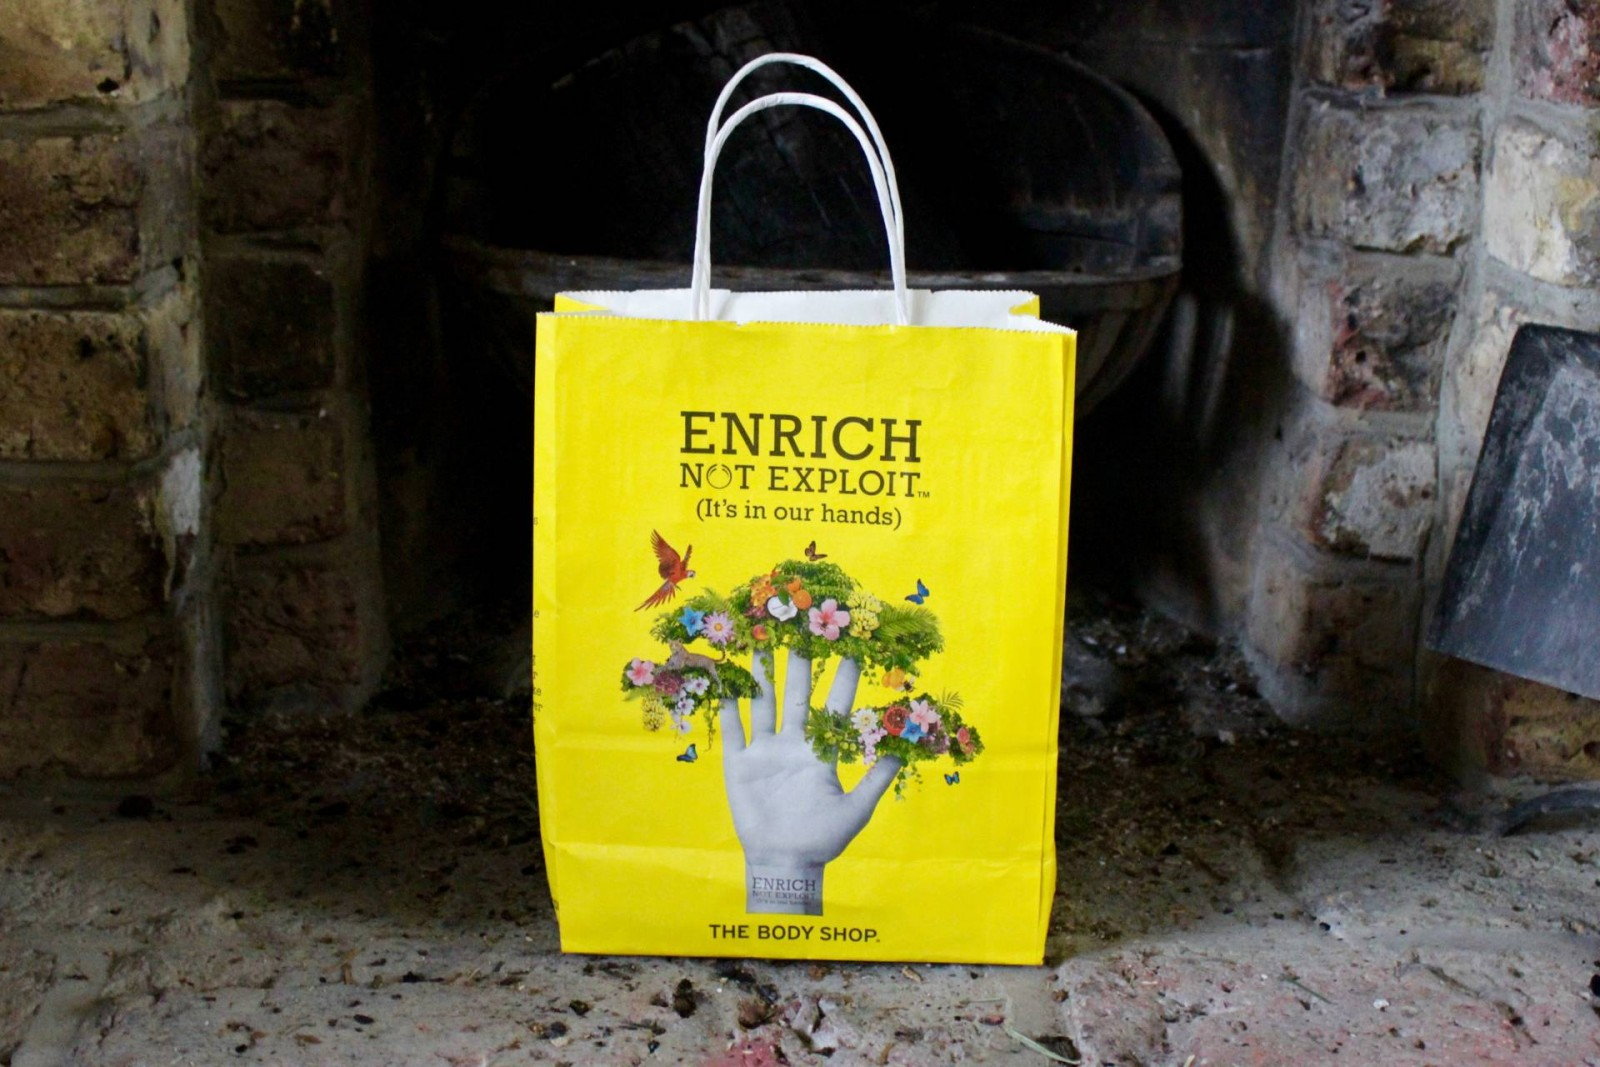 The Body Shop carrier bag